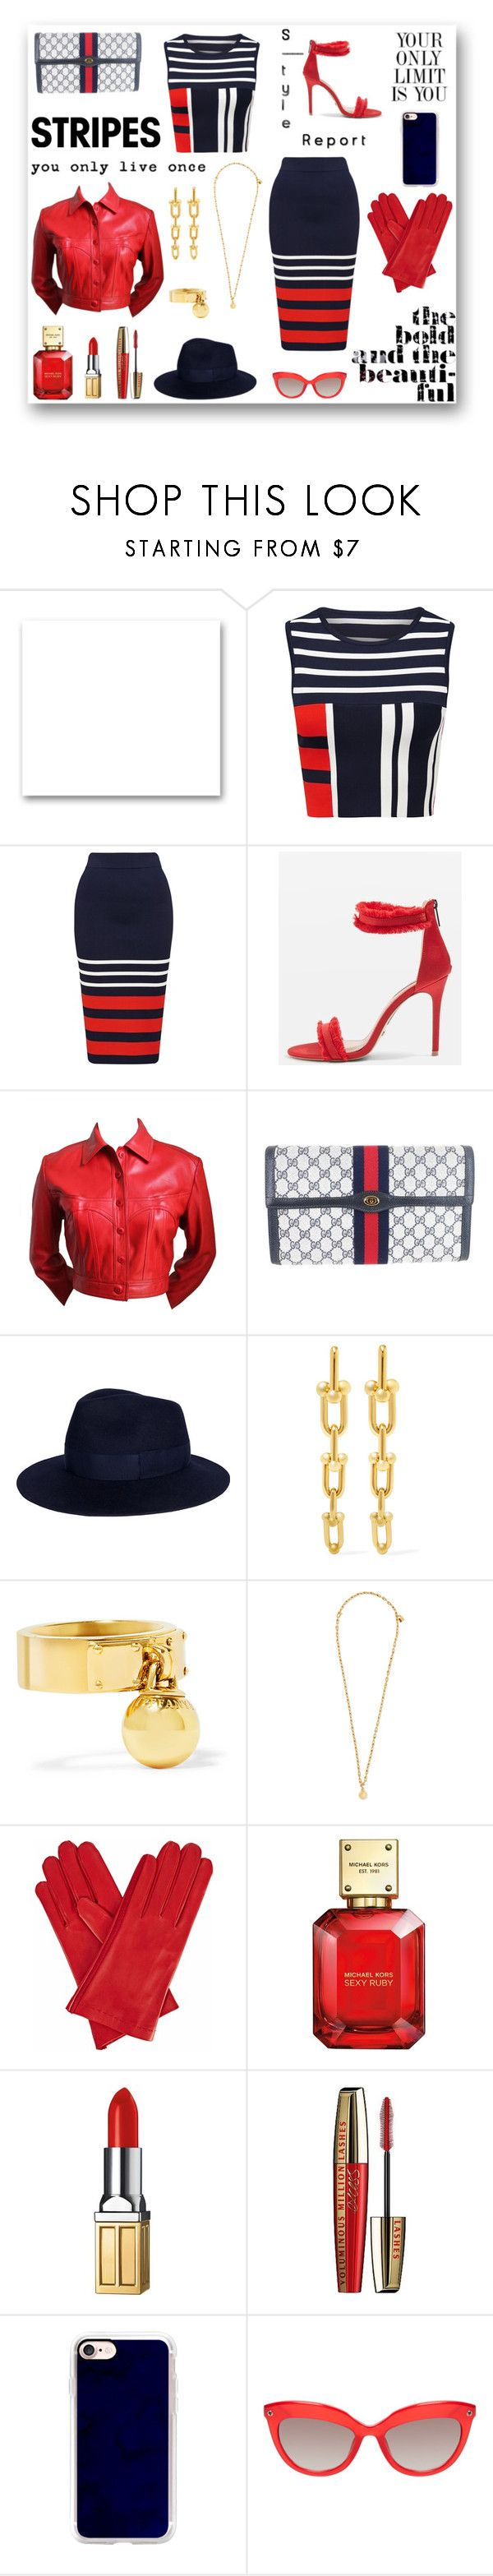 """""""Stripes"""" by rboowybe ❤ liked on Polyvore featuring St. John, Topshop, Alaïa, Gucci, Gizelle Renee, Michael Kors, Elizabeth Arden, L'Oréal Paris, INC International Concepts and Casetify"""